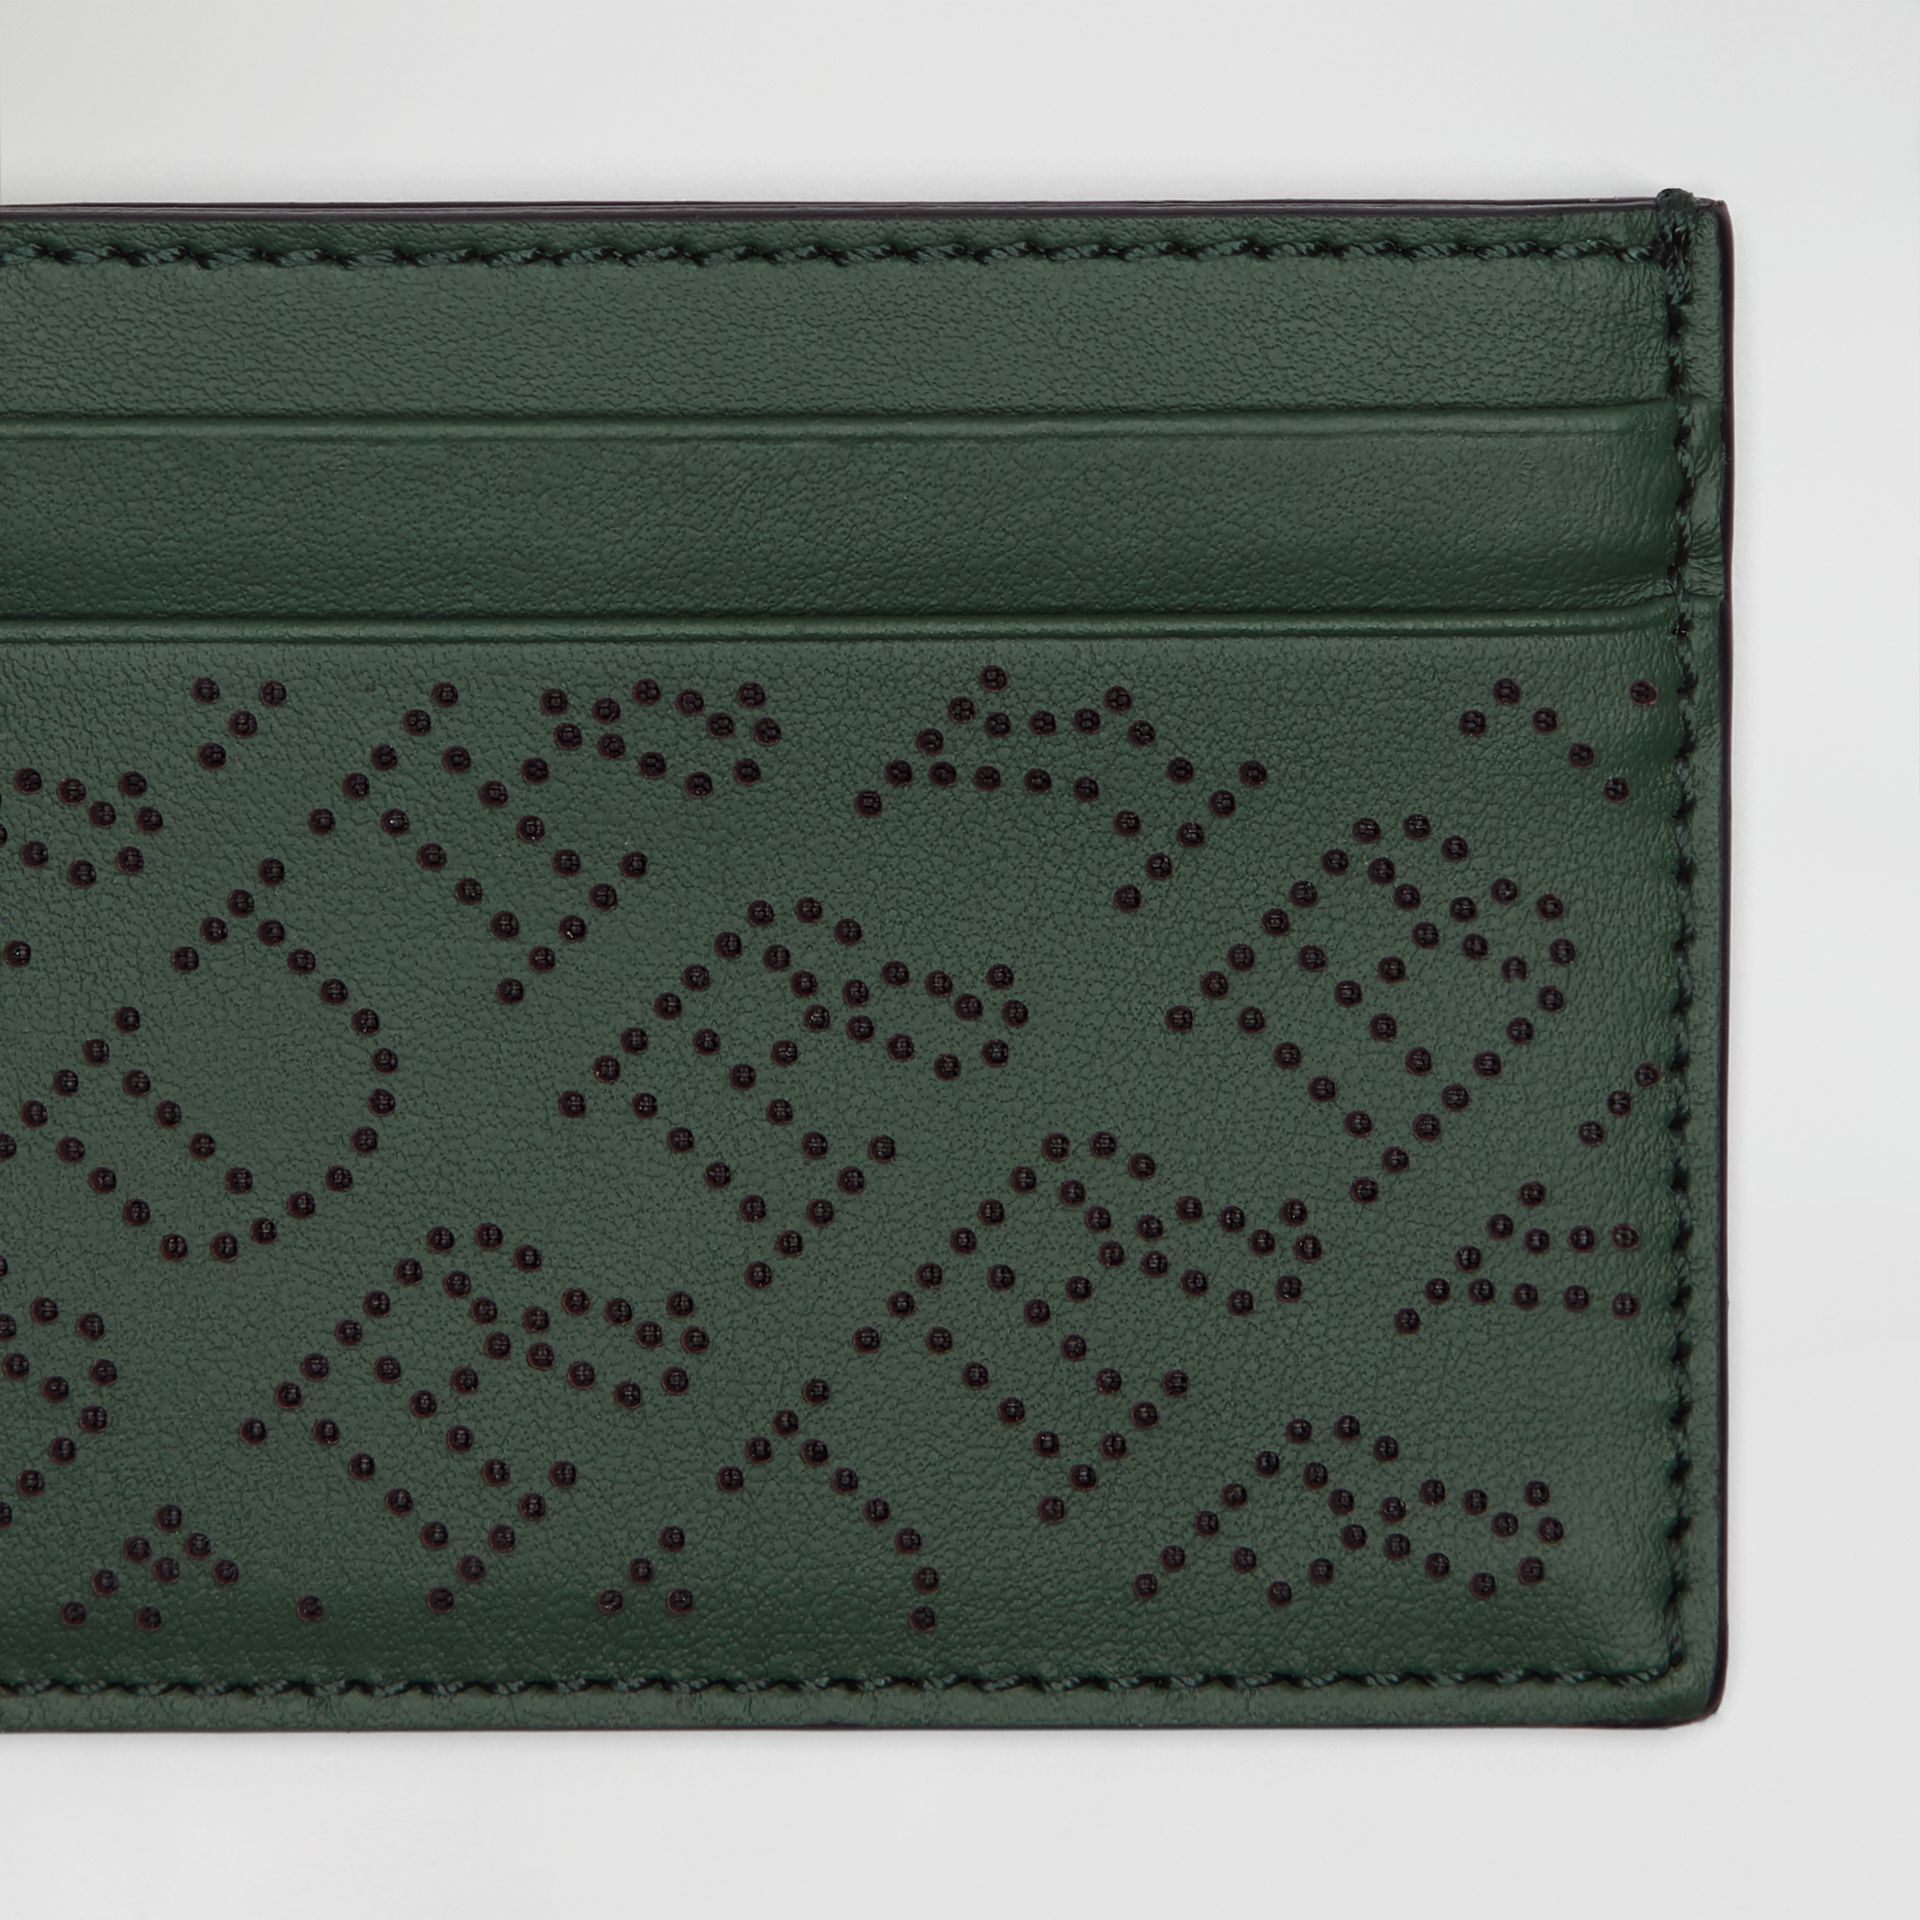 Perforated Logo Leather Card Case in Vintage Green - Women | Burberry Australia - gallery image 1